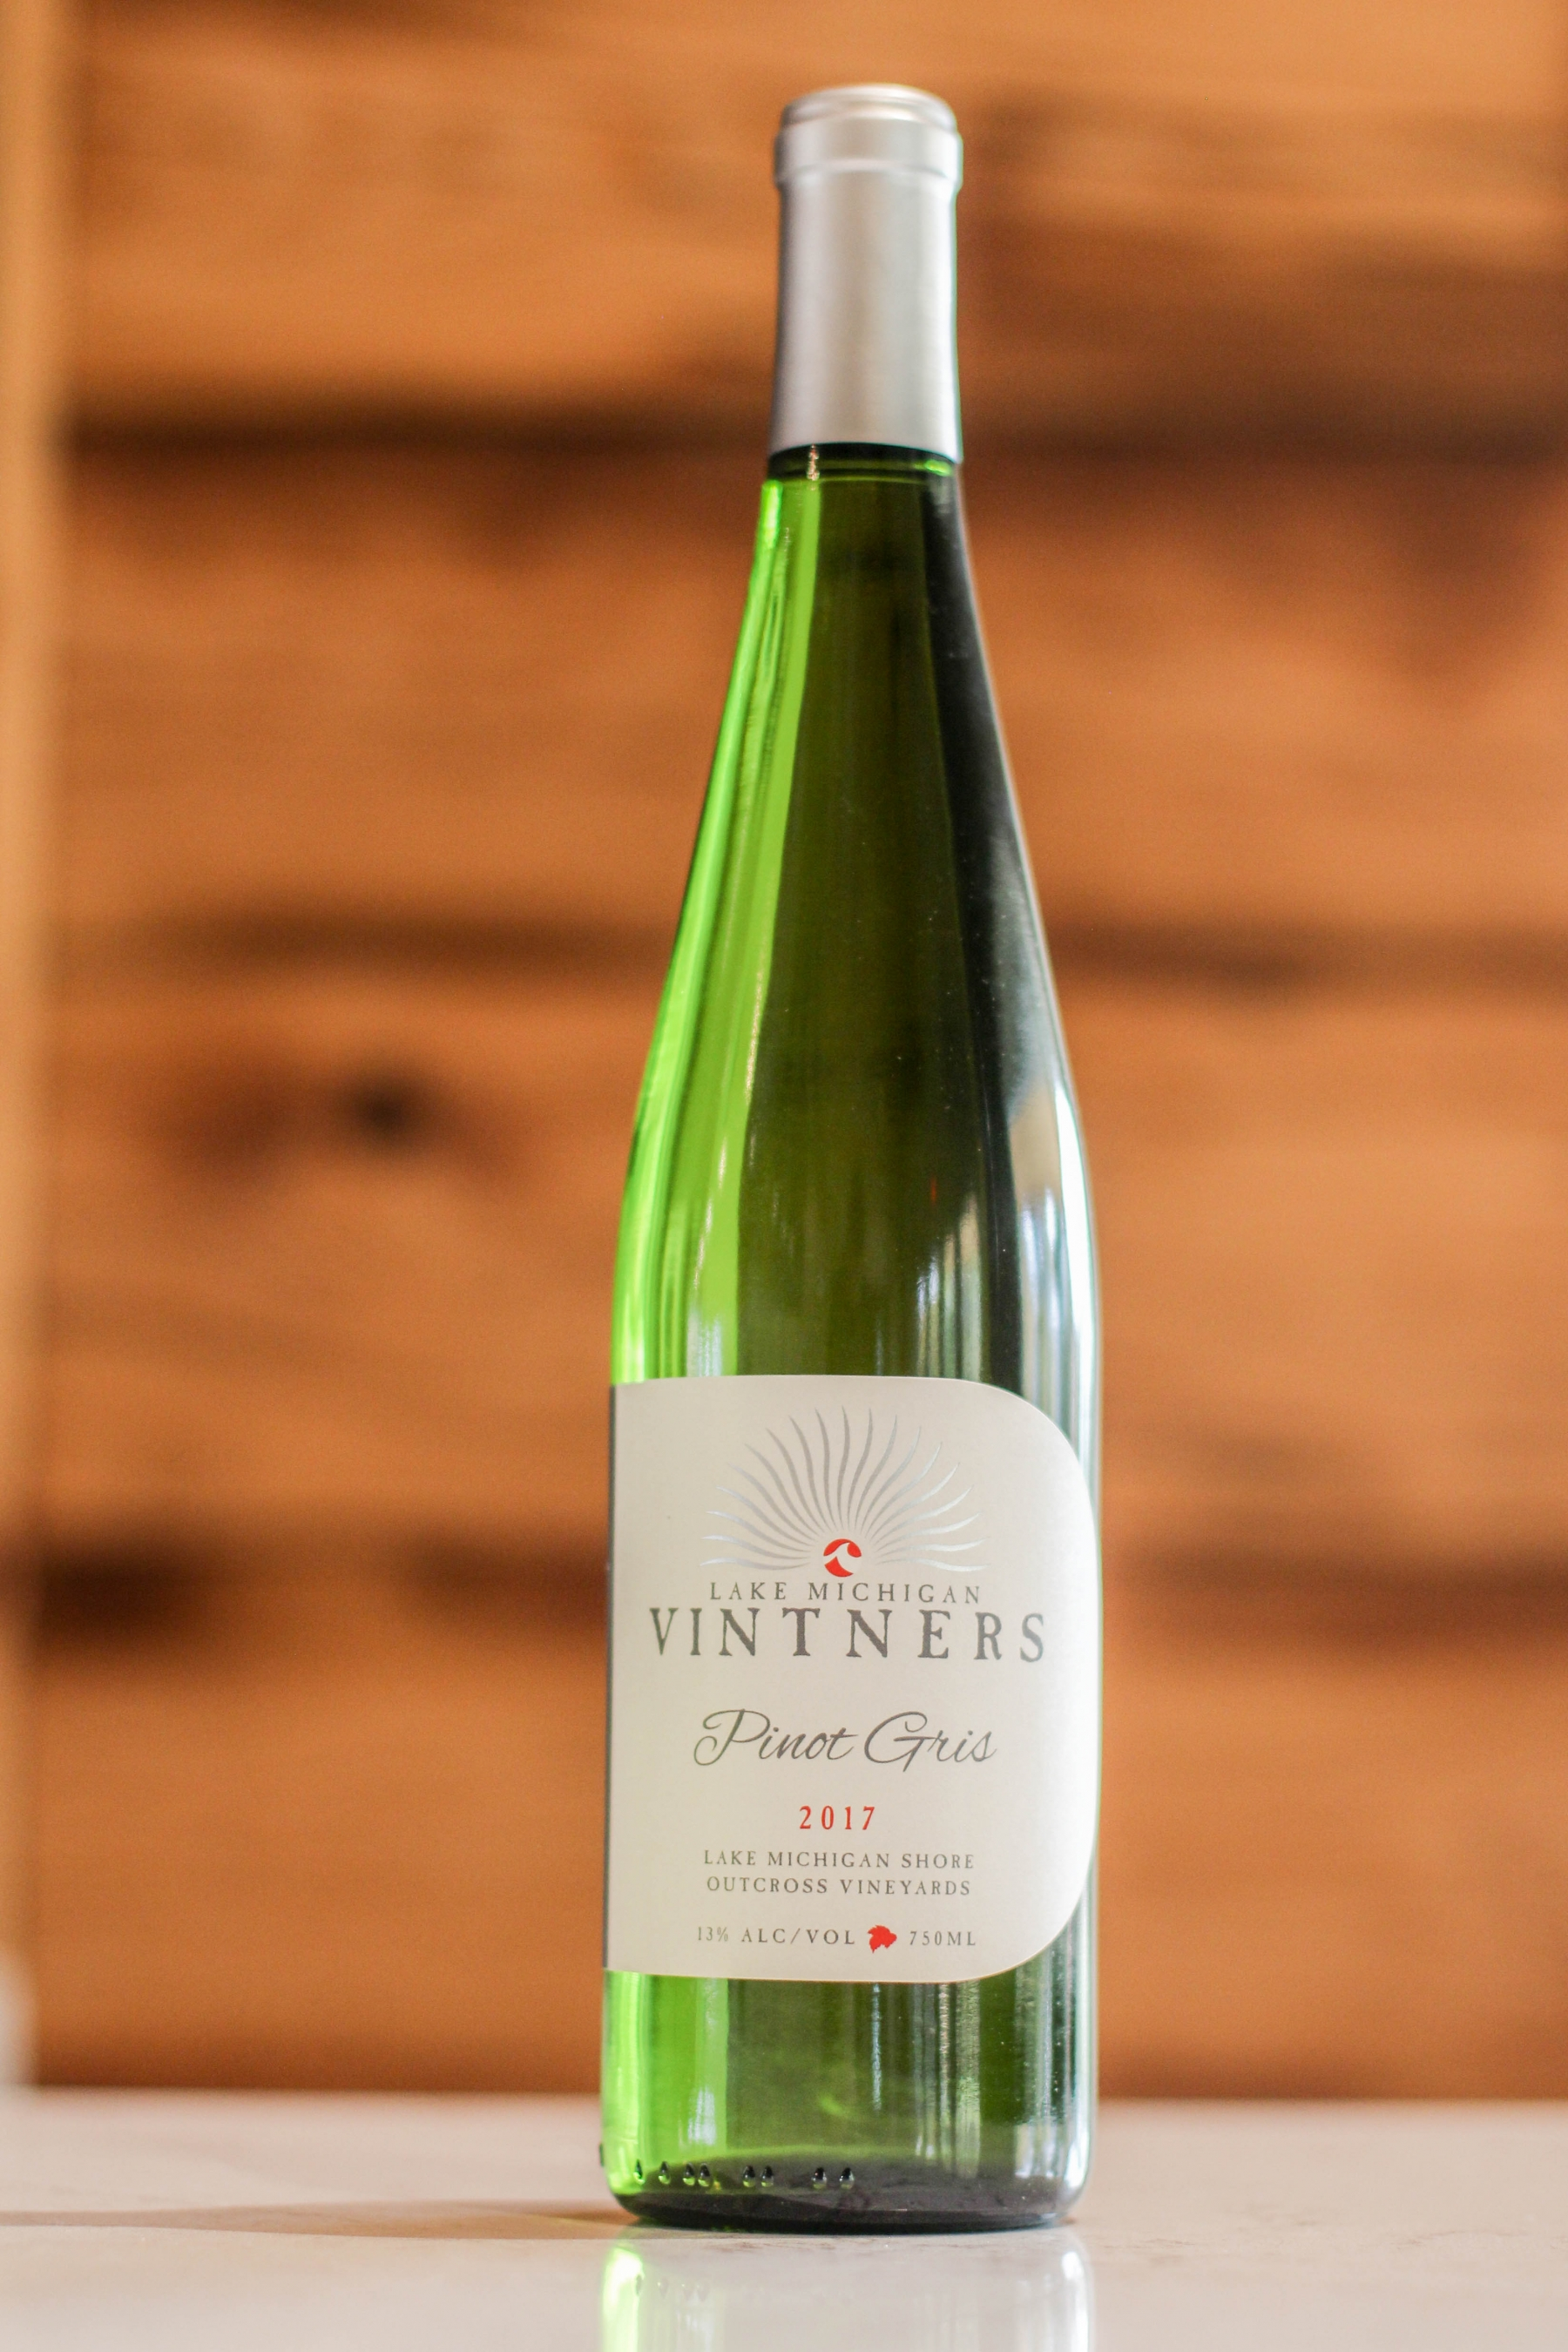 """A close-up of a deep green bottle of Pinot Gris, with a white and silver label reading """"Lake Michigan Vintners, Pinot Gris, 2017. Lake Michigan Shore, Outcross Vineyards. 12% alcohol by volume, 750mL."""" The bottle is a tall Alsace-style bottle."""